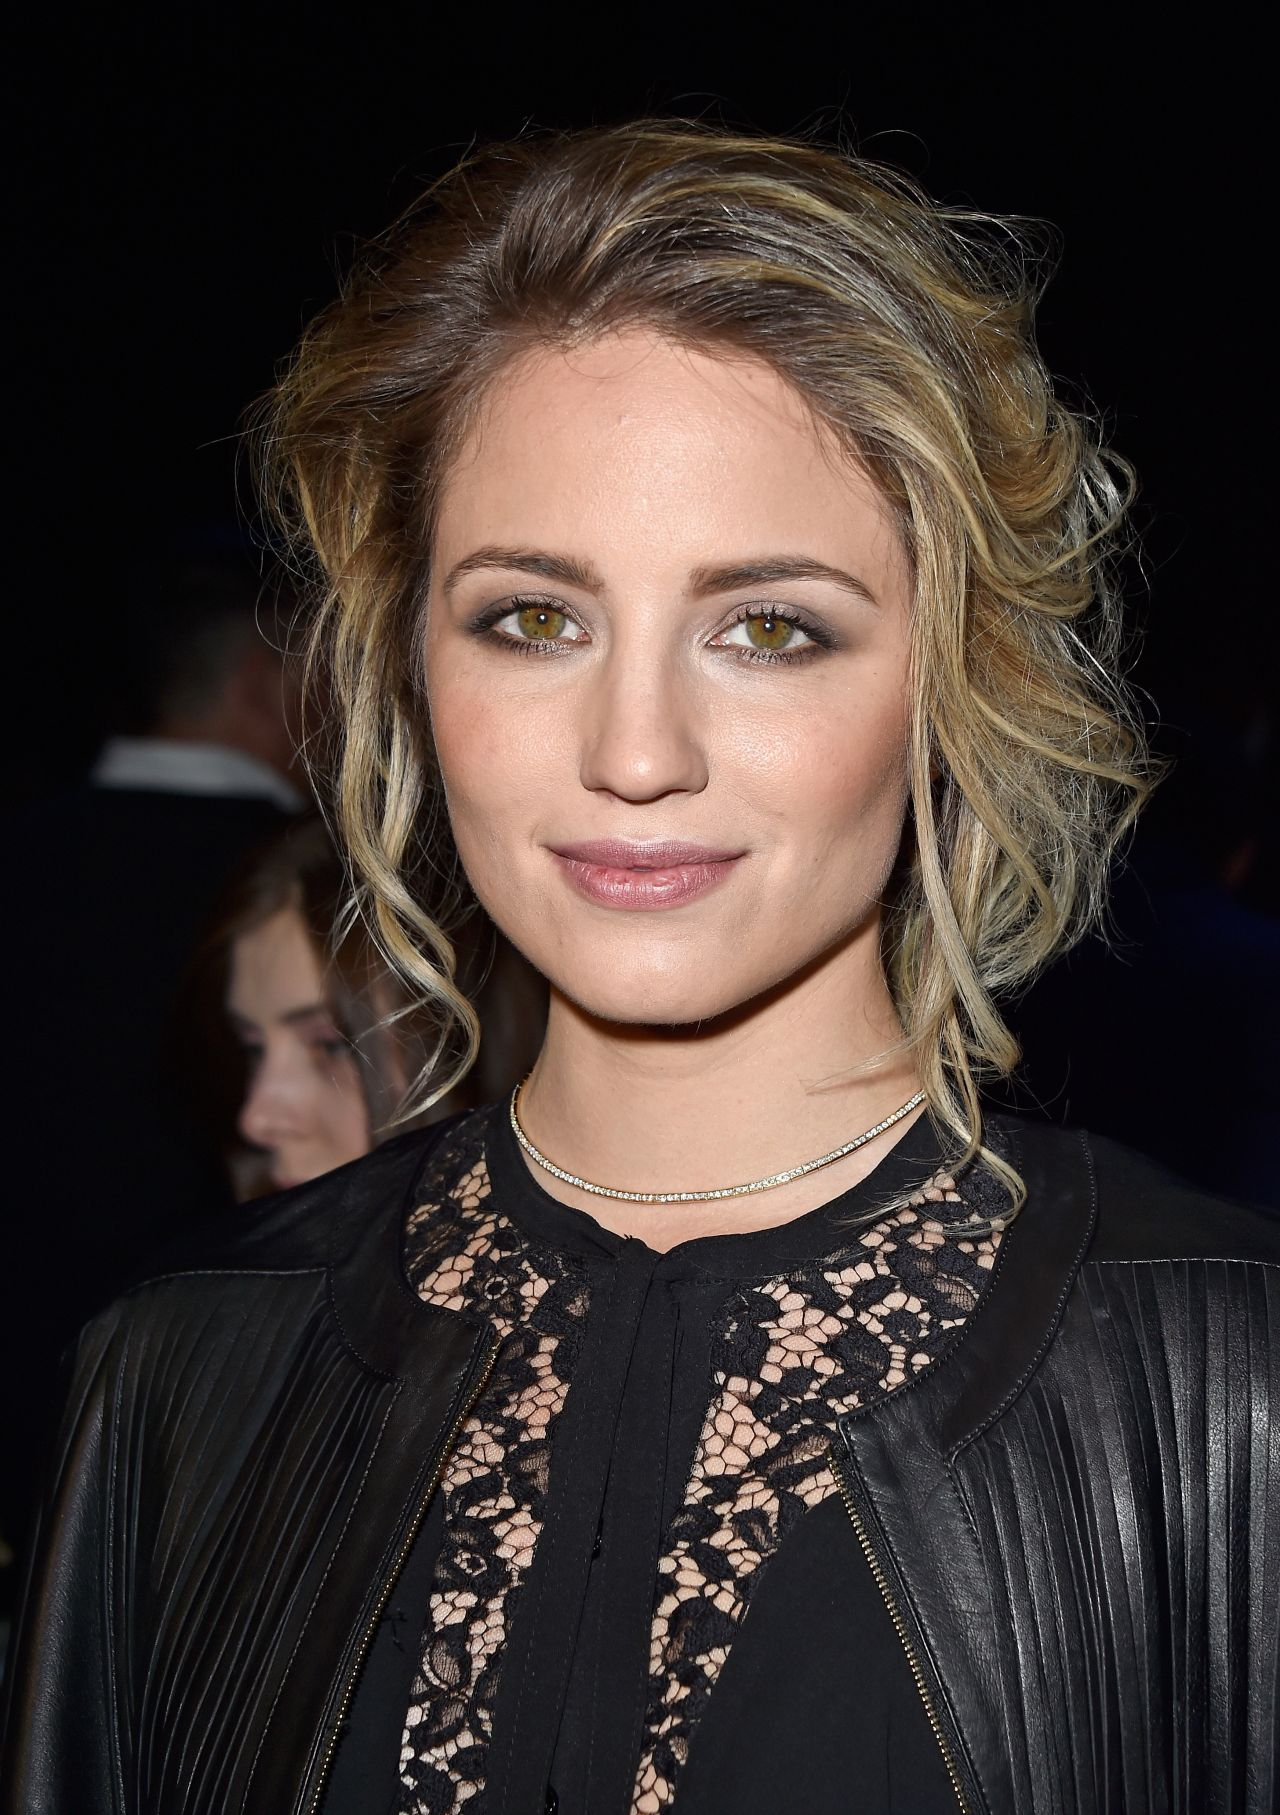 dianna agron 2017 - photo #35